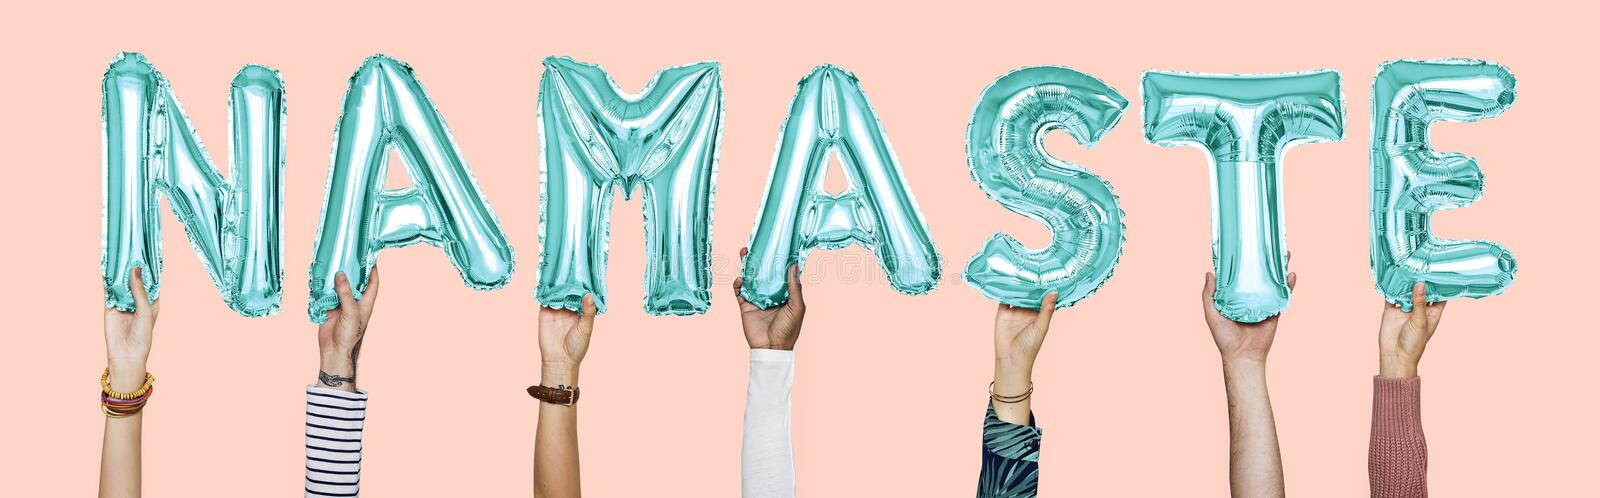 Hands holding namaste word in balloon letters stock photography